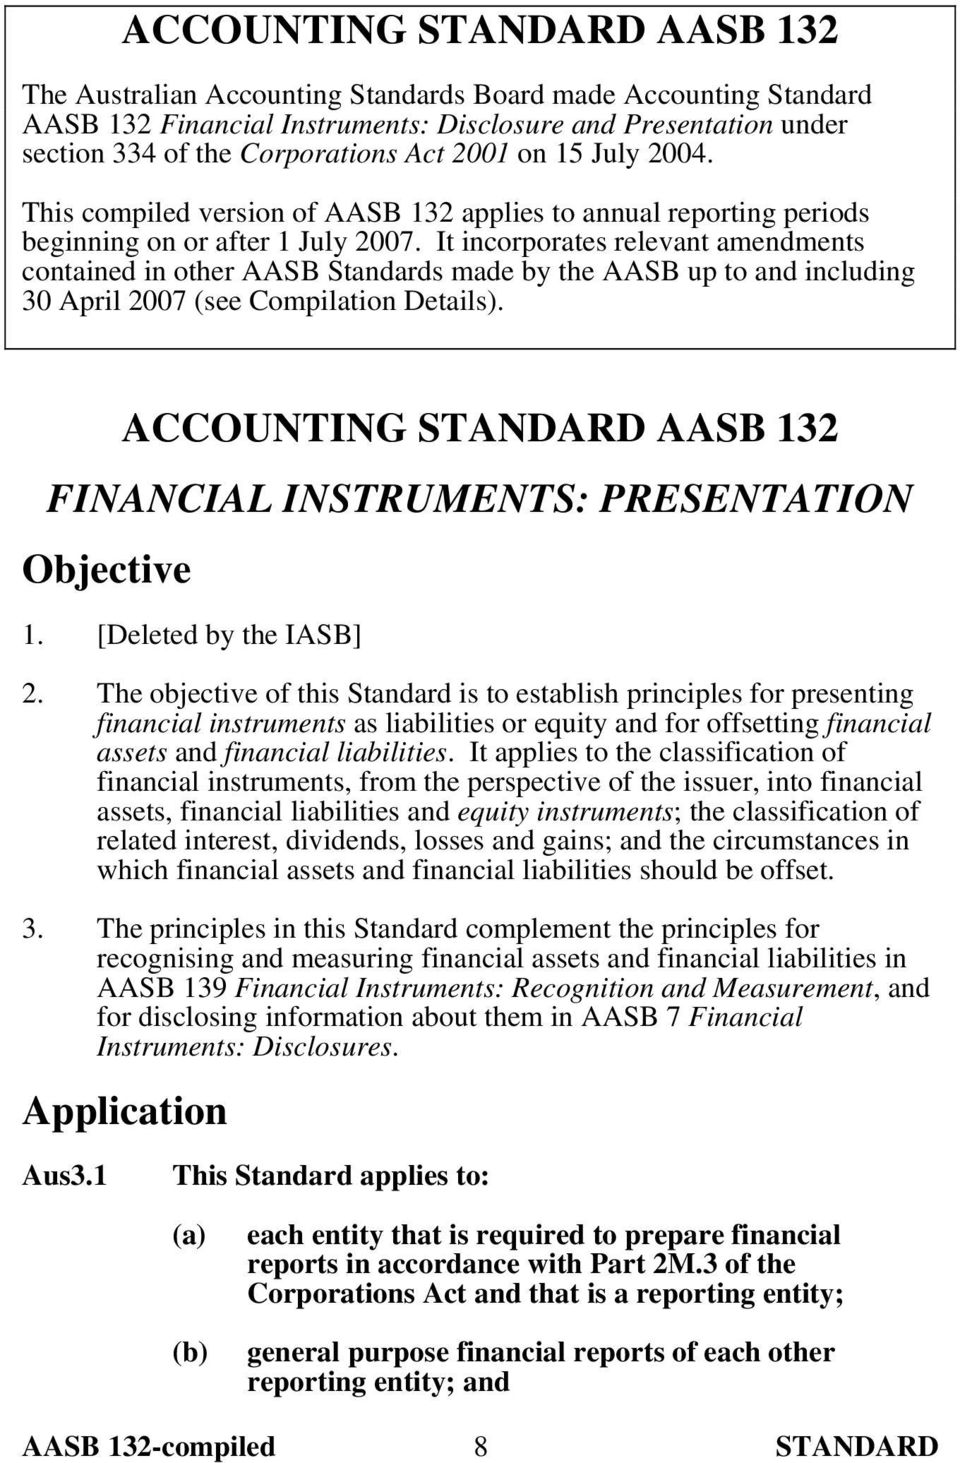 It incorporates relevant amendments contained in other AASB Standards made by the AASB up to and including 30 April 2007 (see Compilation Details).